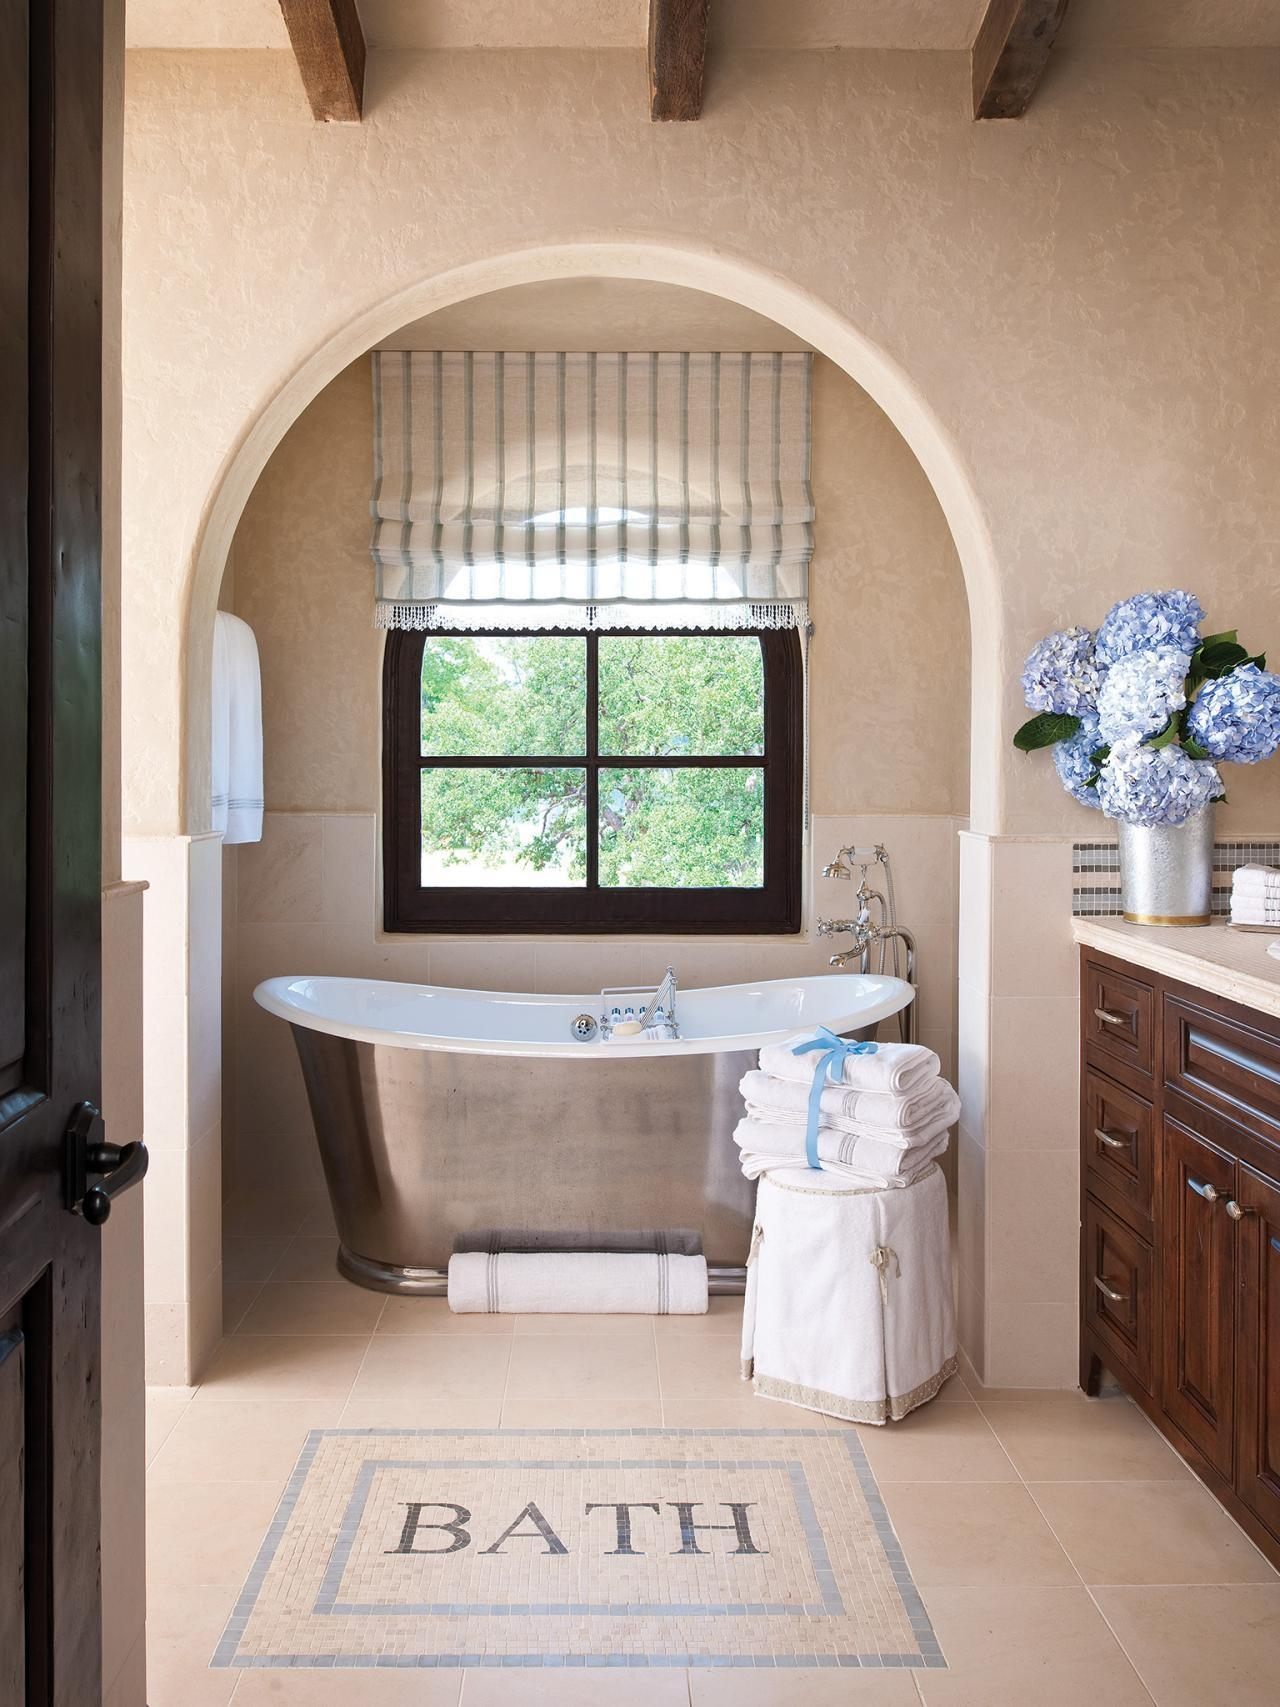 Copper Bathtub Design Ideas: Pictures & Tips From Hgtv | Hgtv Within Italian Wall Art For Bathroom (Image 10 of 20)